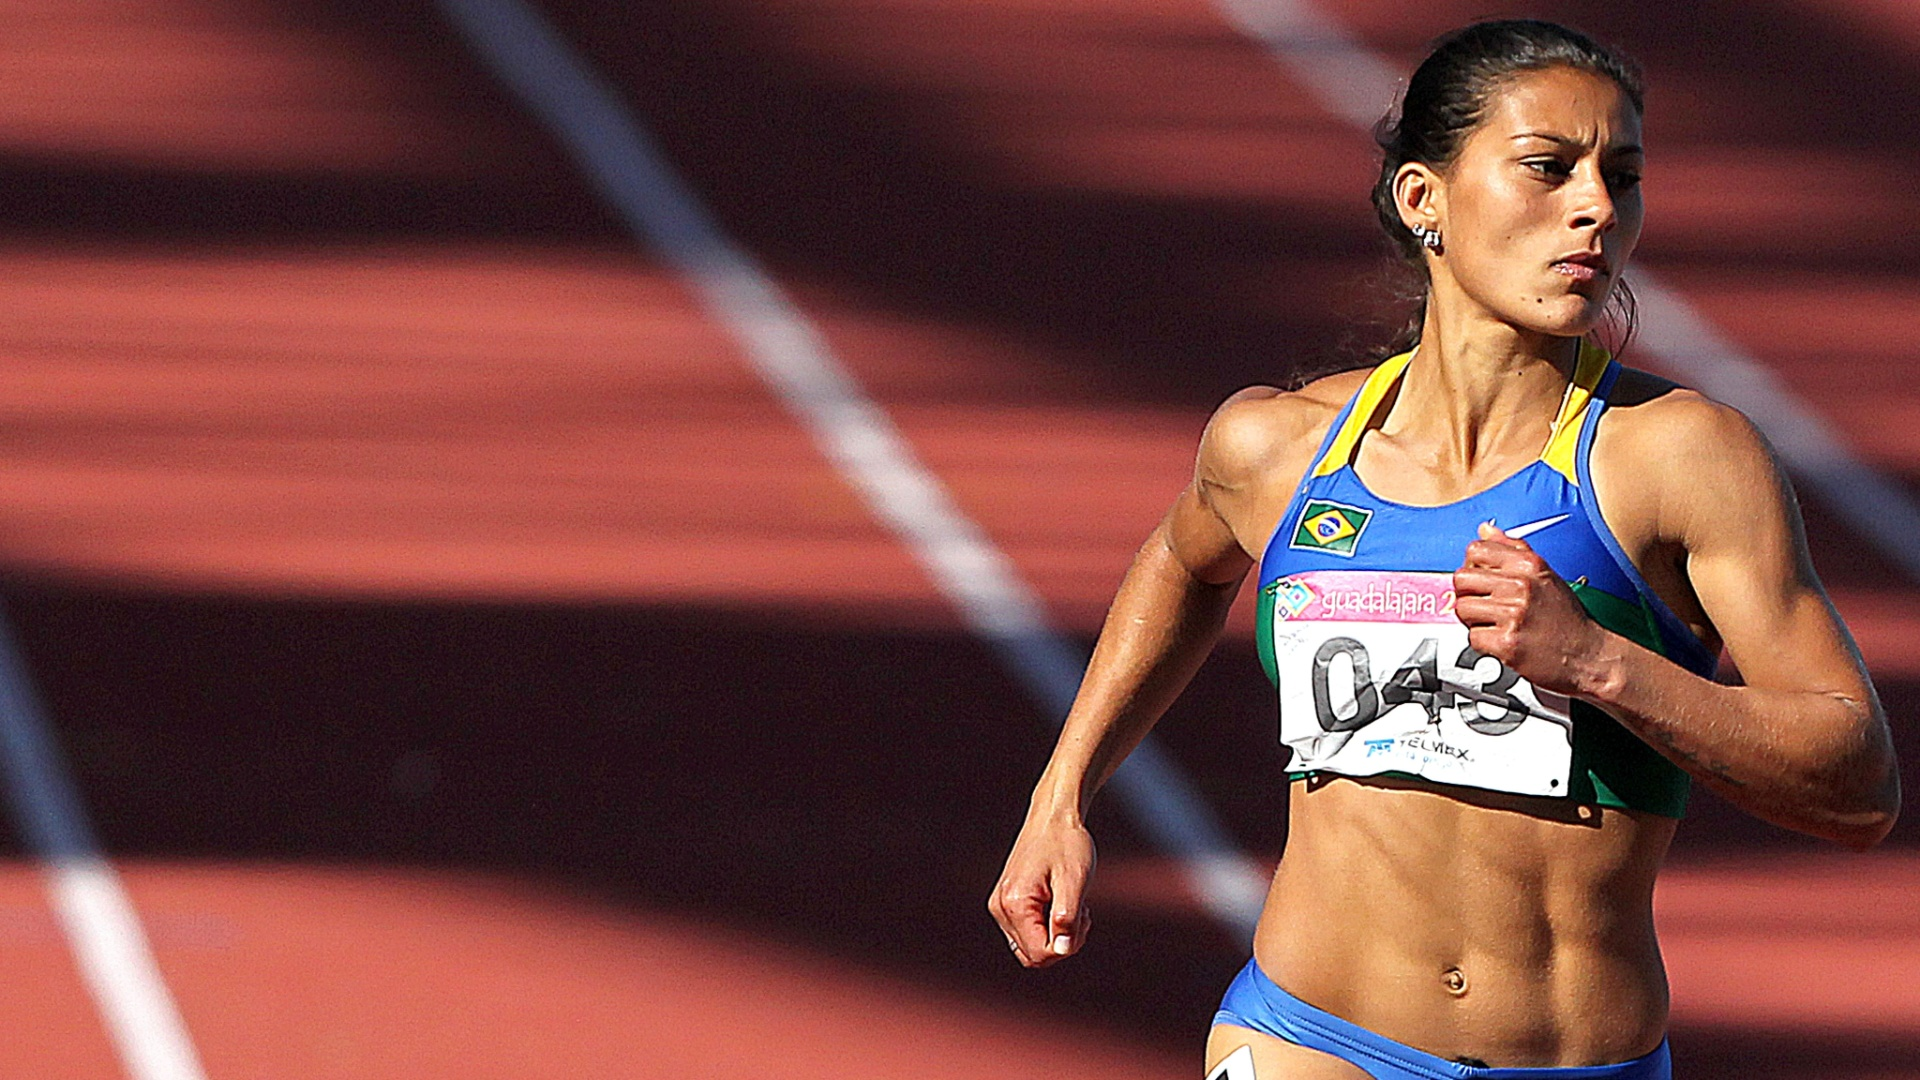 Ana Claudia Lemos corre na preliminar dos 200 m rasos, durante o terceiro dia do atletismo na pista do Pan de Guadalajara